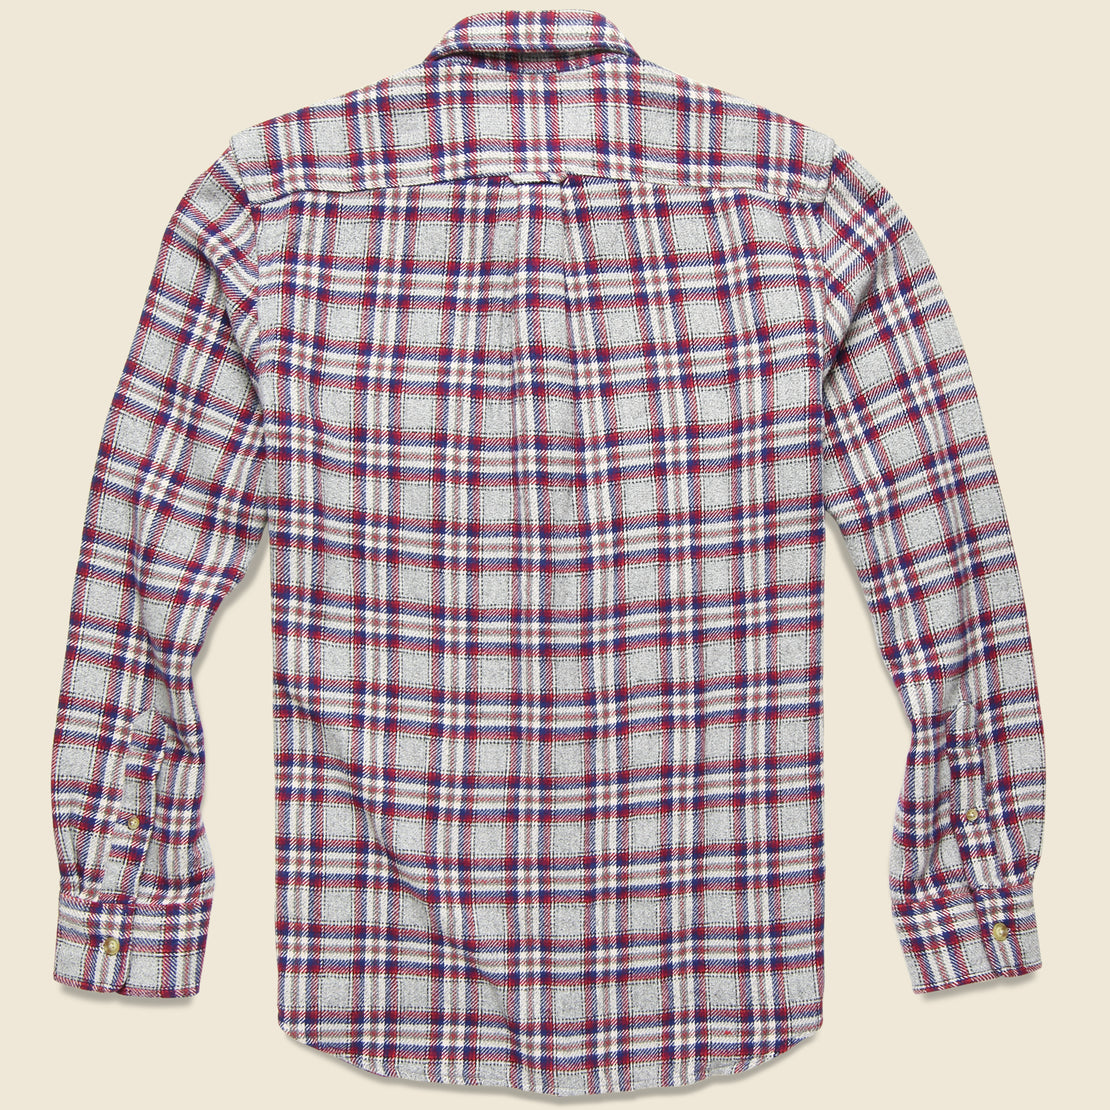 Milbank Heritage Flannel Shirt - Gray/Red